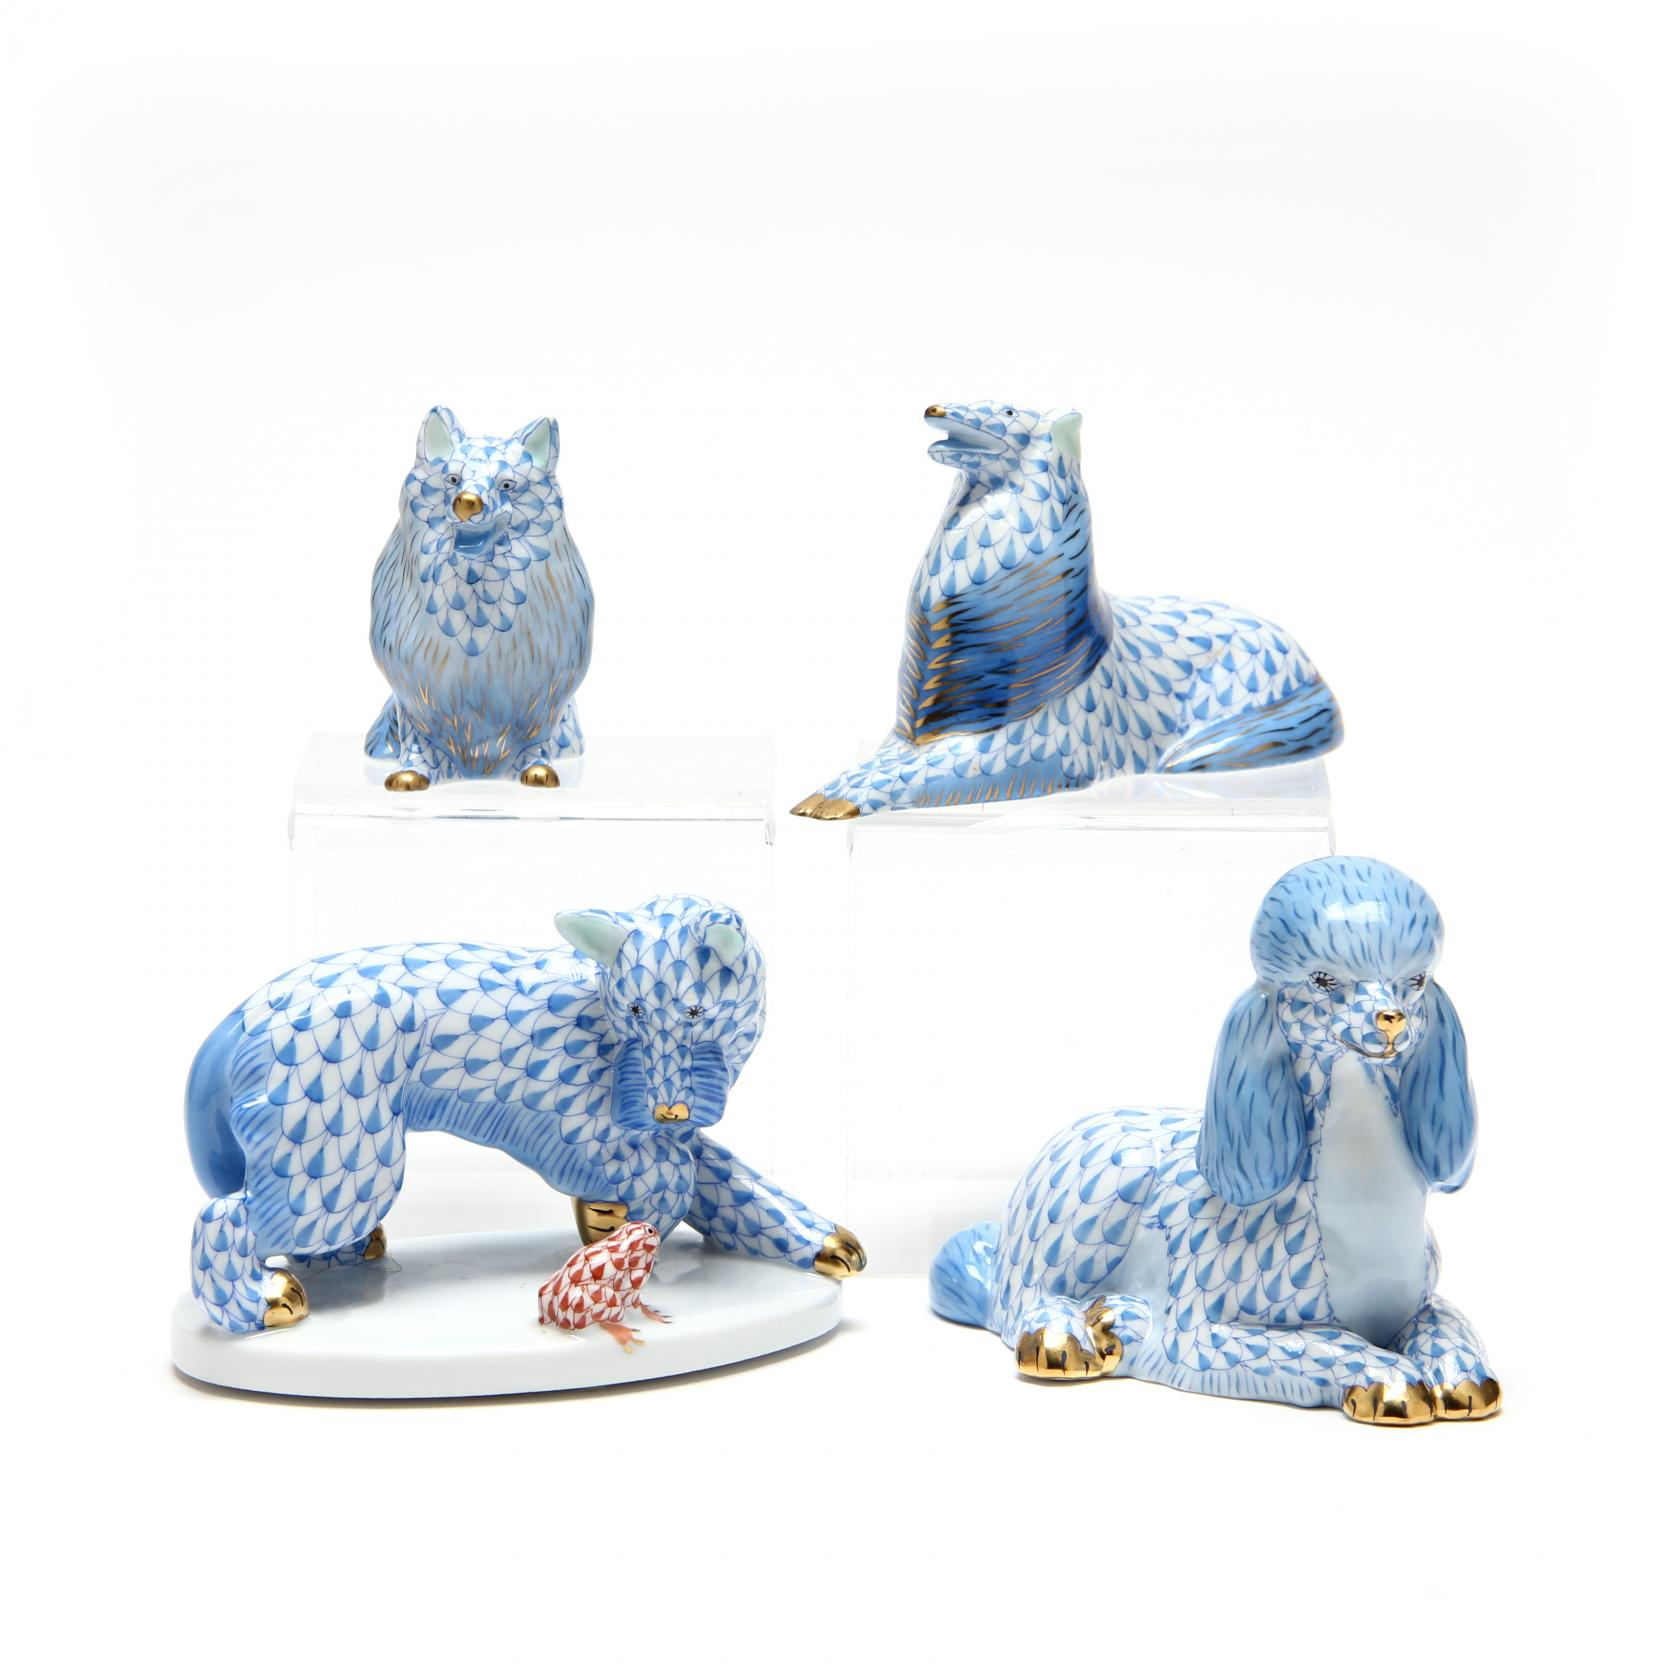 a-group-of-four-herend-dog-figurines